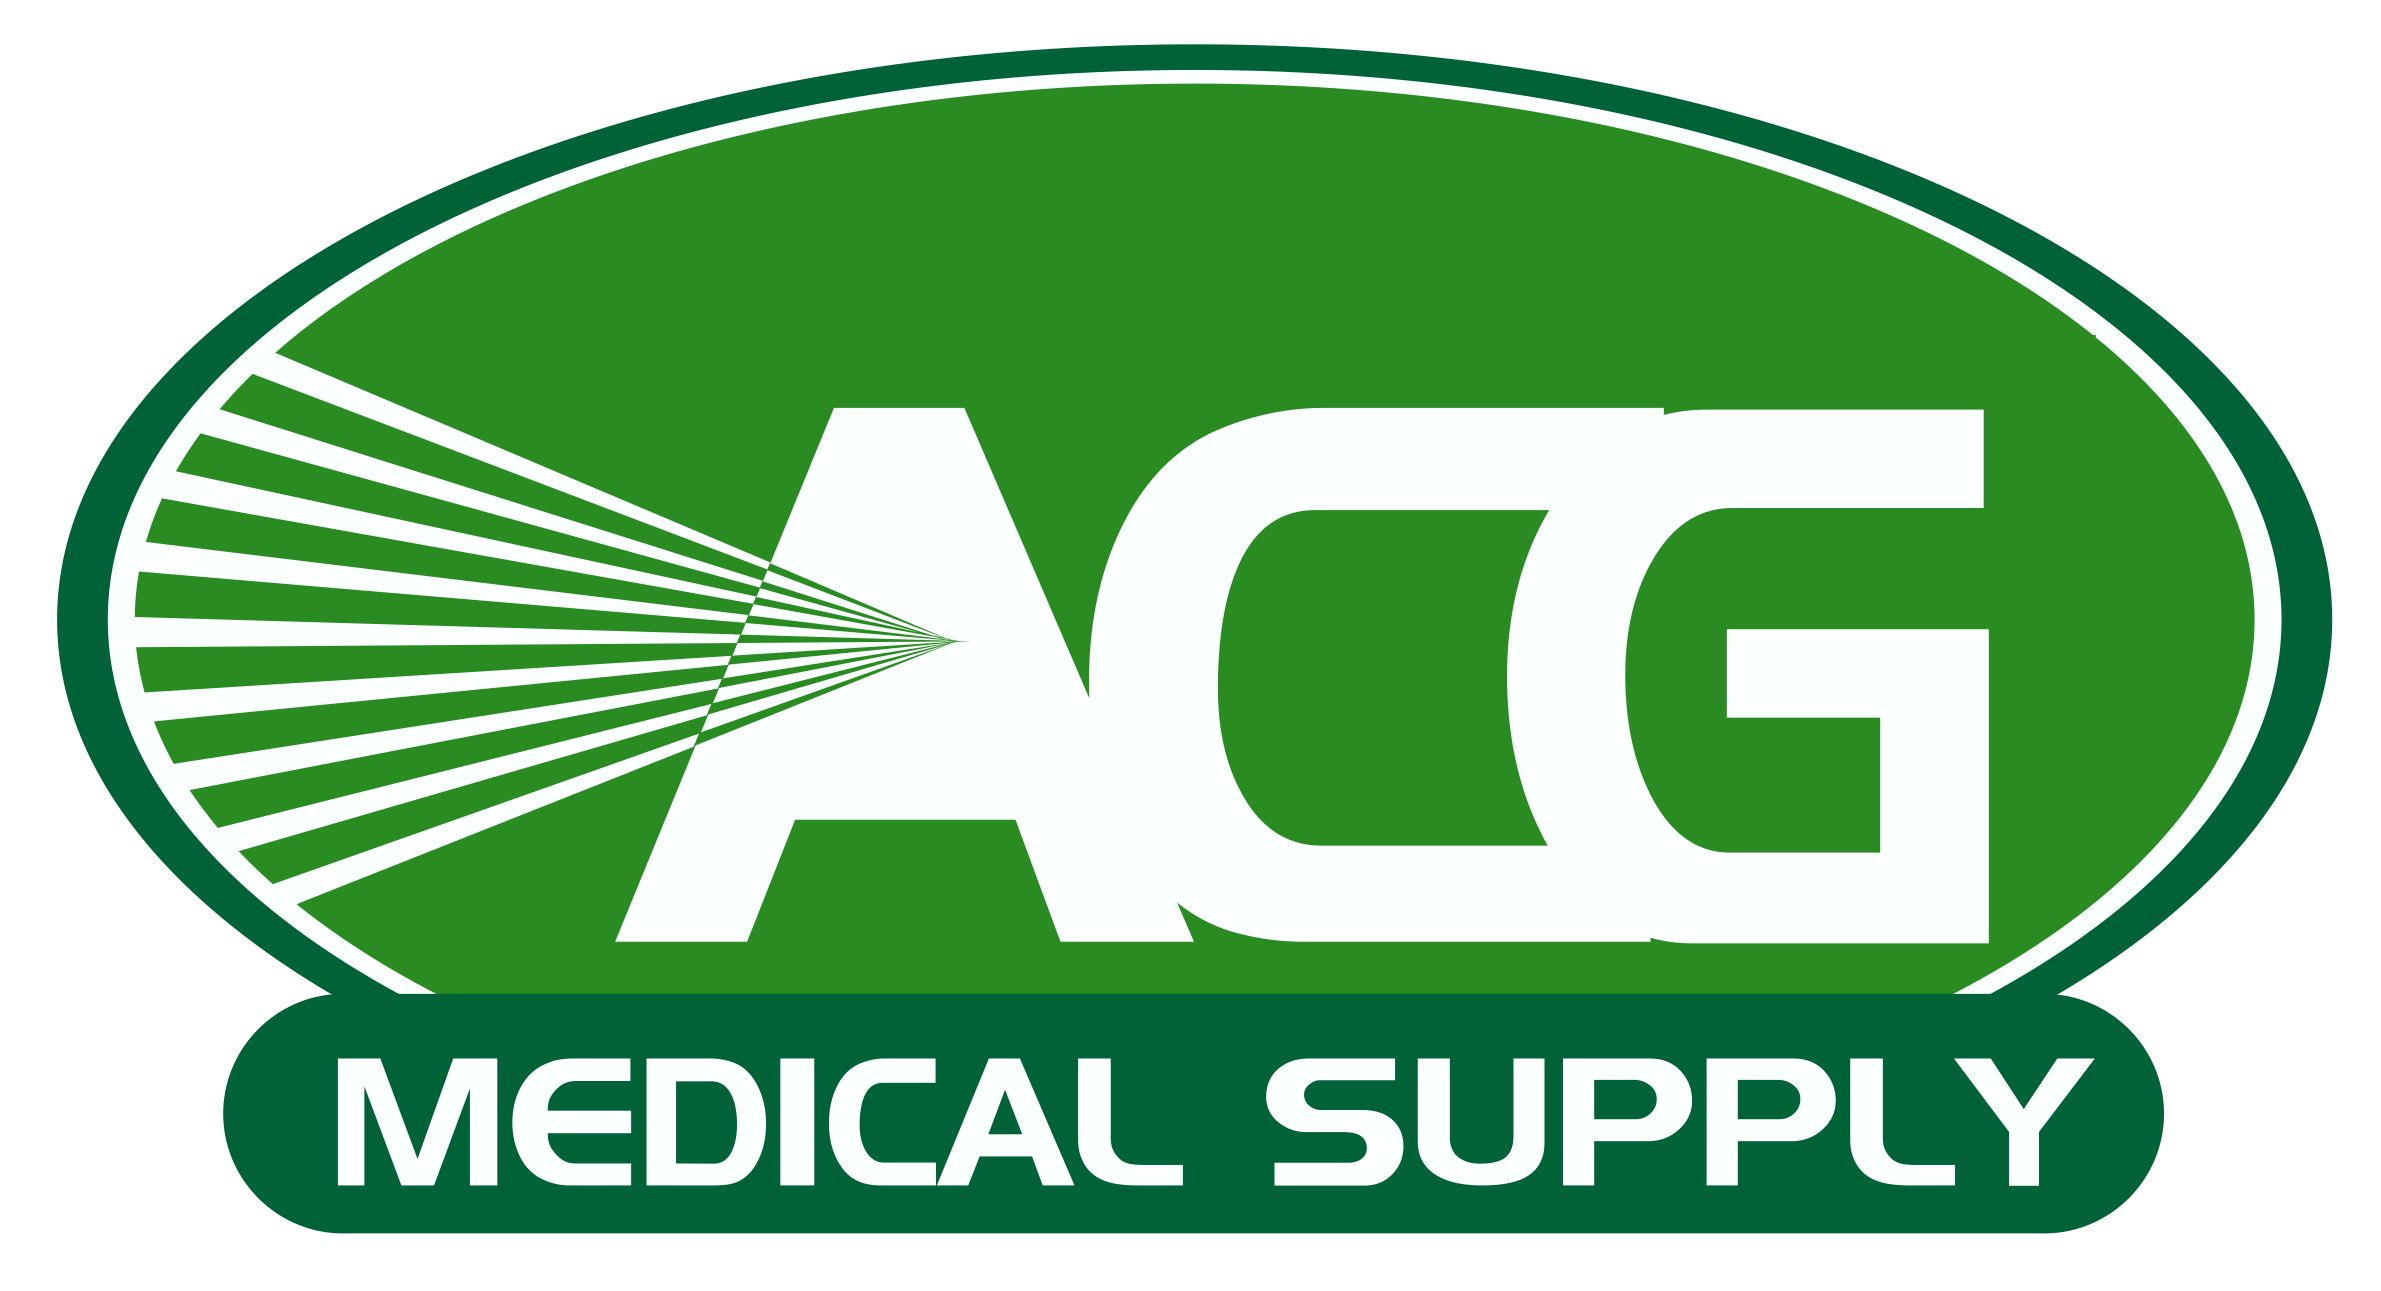 ACG Medical Supply - Our family is dedicated to helping yours.